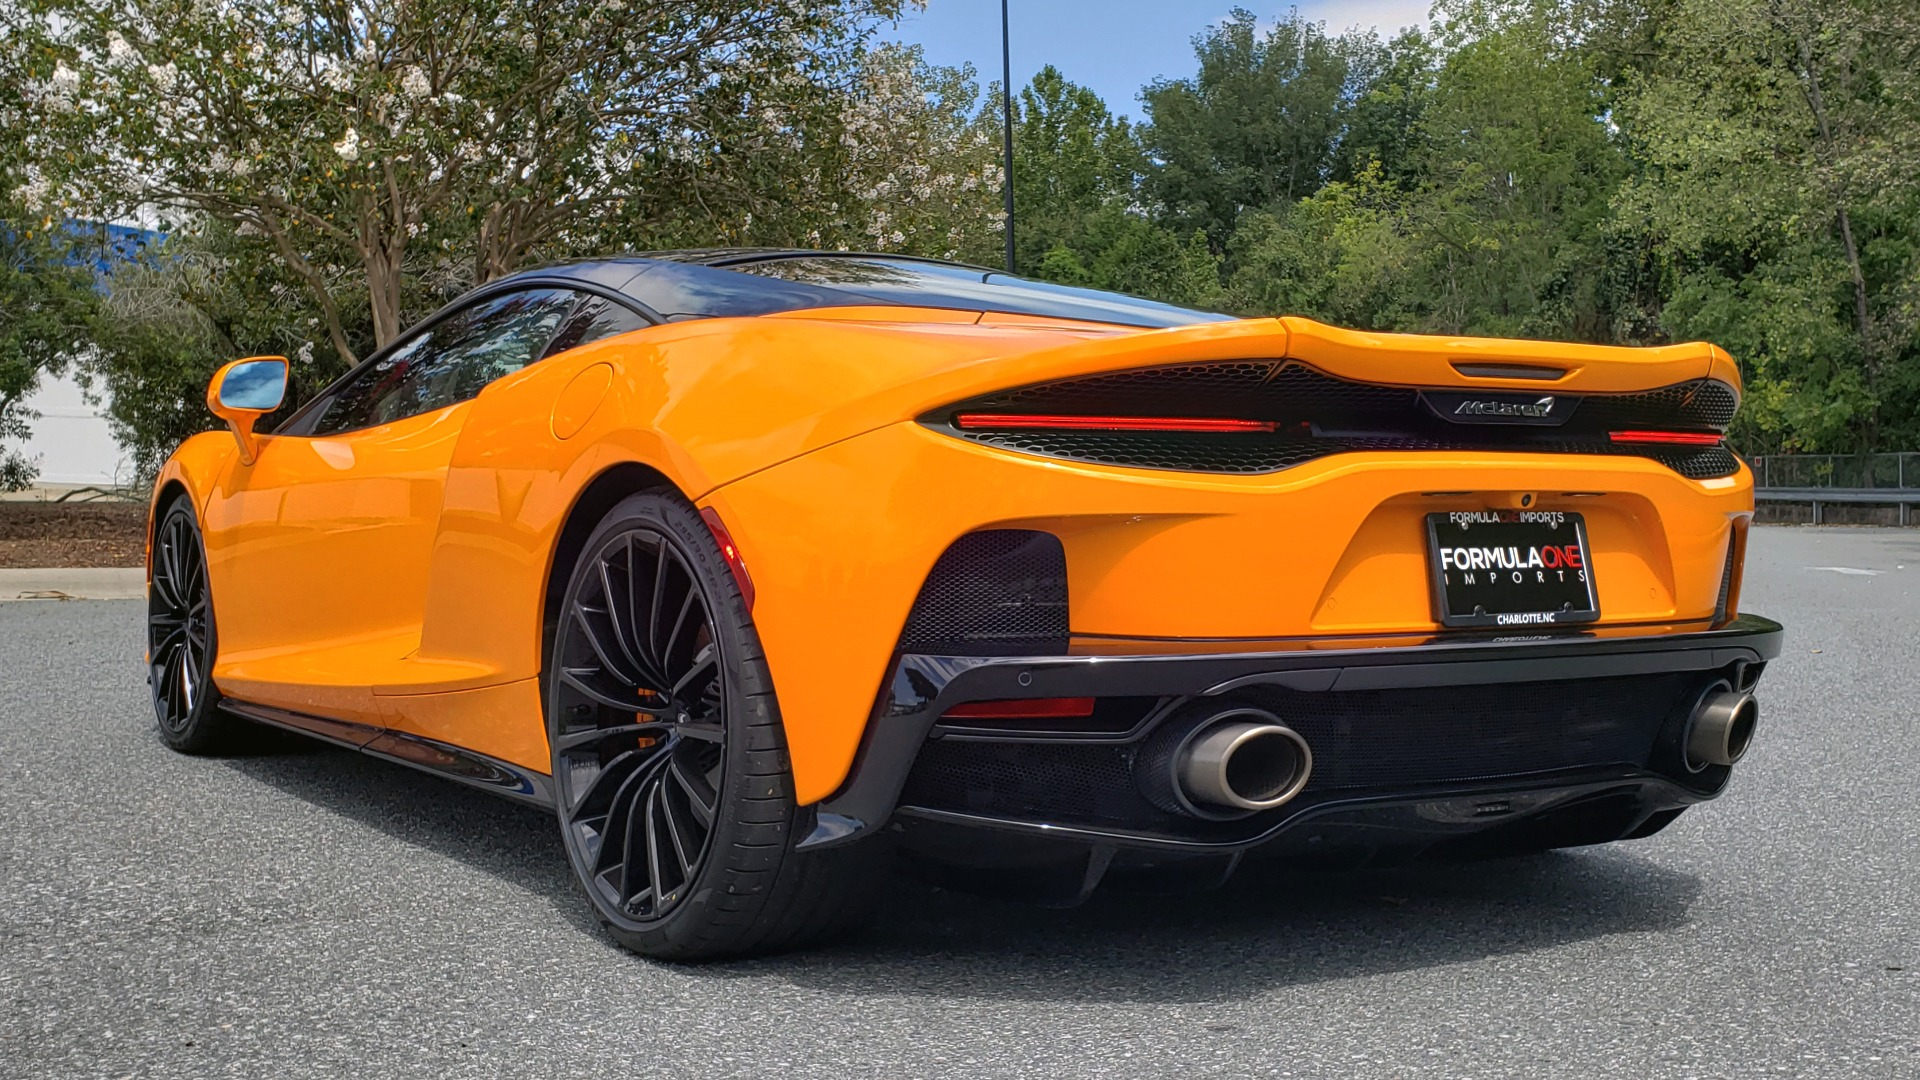 Used 2020 McLaren GT COUPE / 4.0L V8 - 612HP / RWD / NAV / REARVIEW / 20IN BLACK WHEELS for sale $244,000 at Formula Imports in Charlotte NC 28227 9